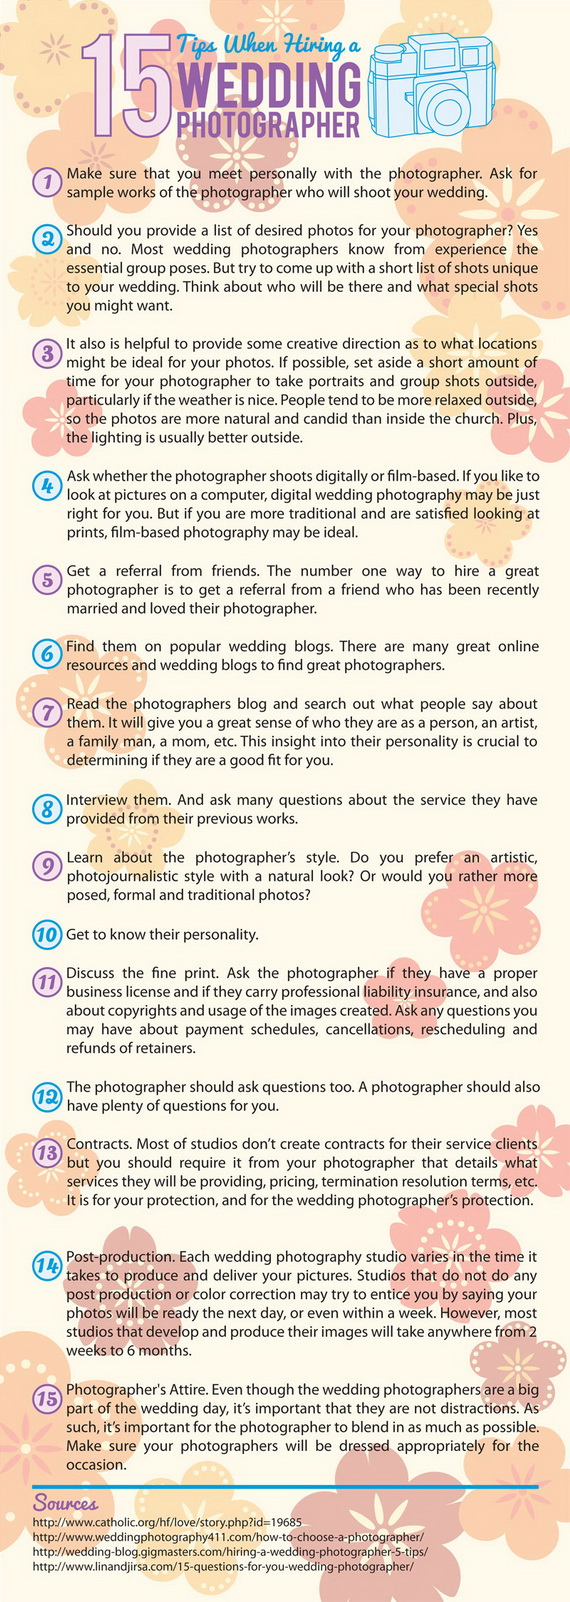 Wedding photographer infographic